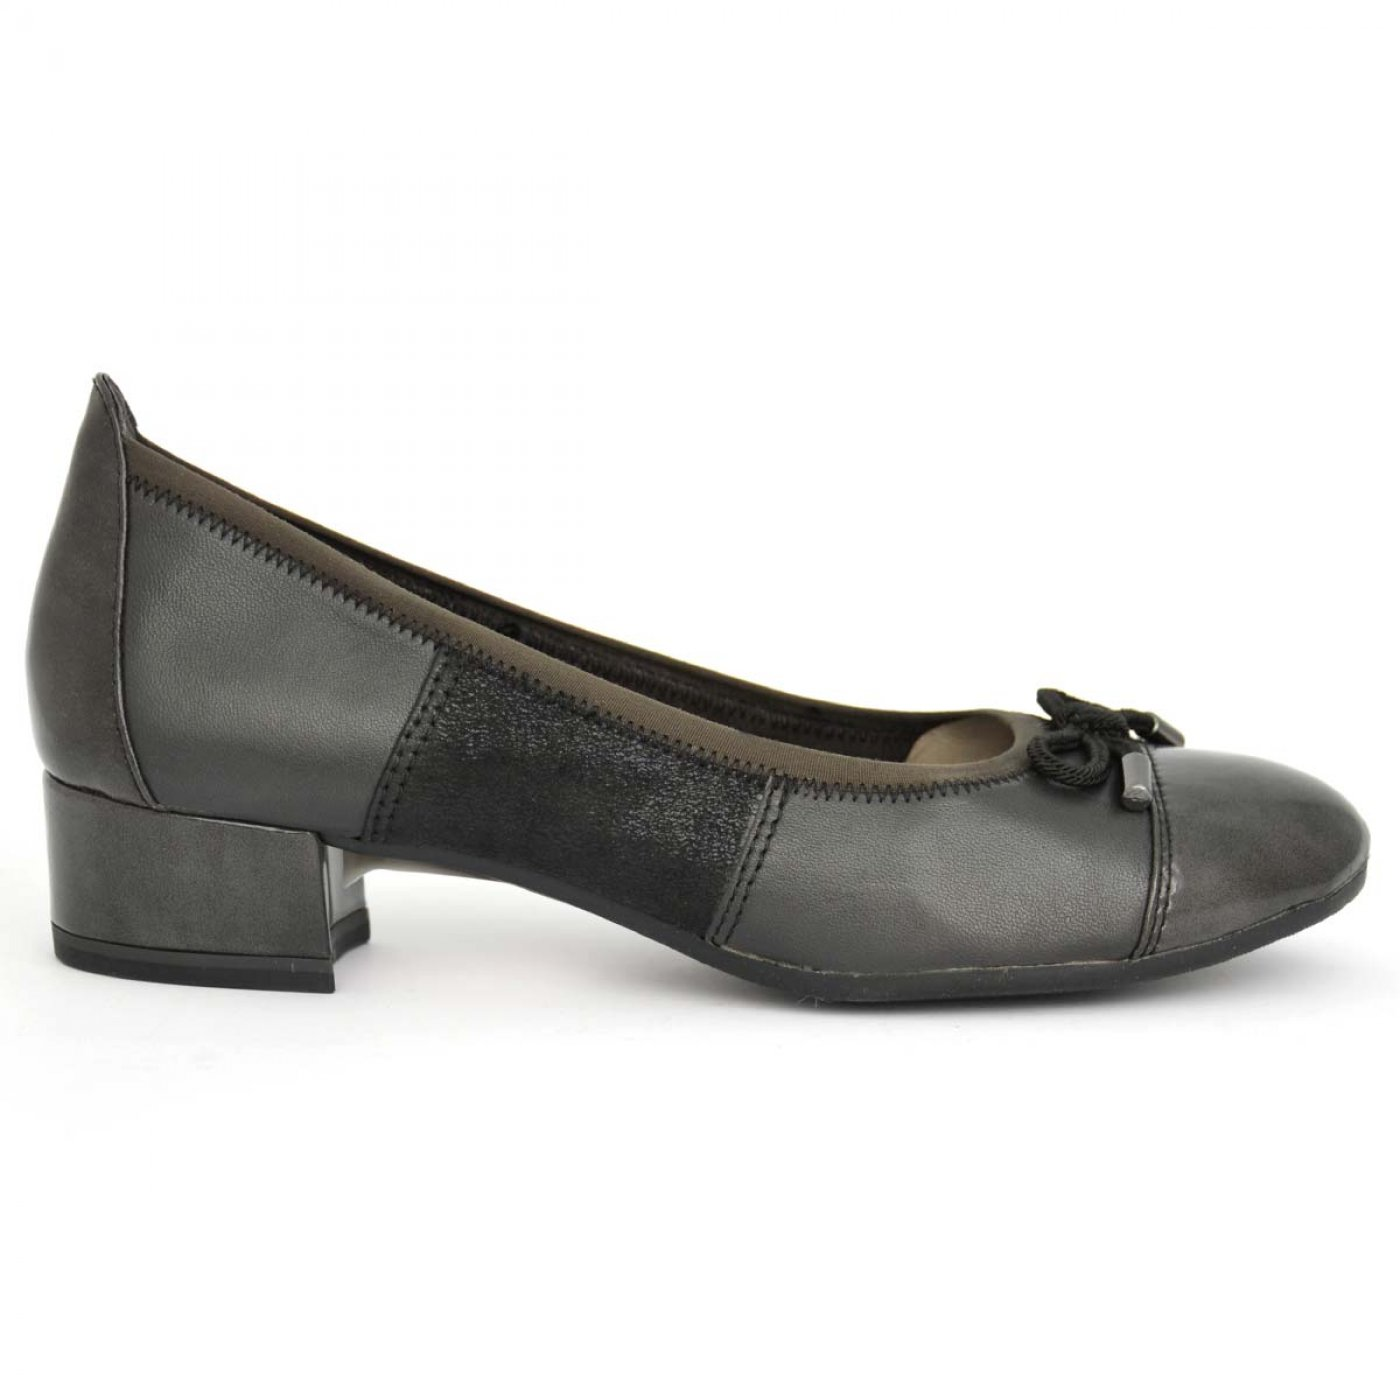 Tamaris pumps buy online pumps - modish grey low heel women pump shoes | tamaris germany PNEUKFA